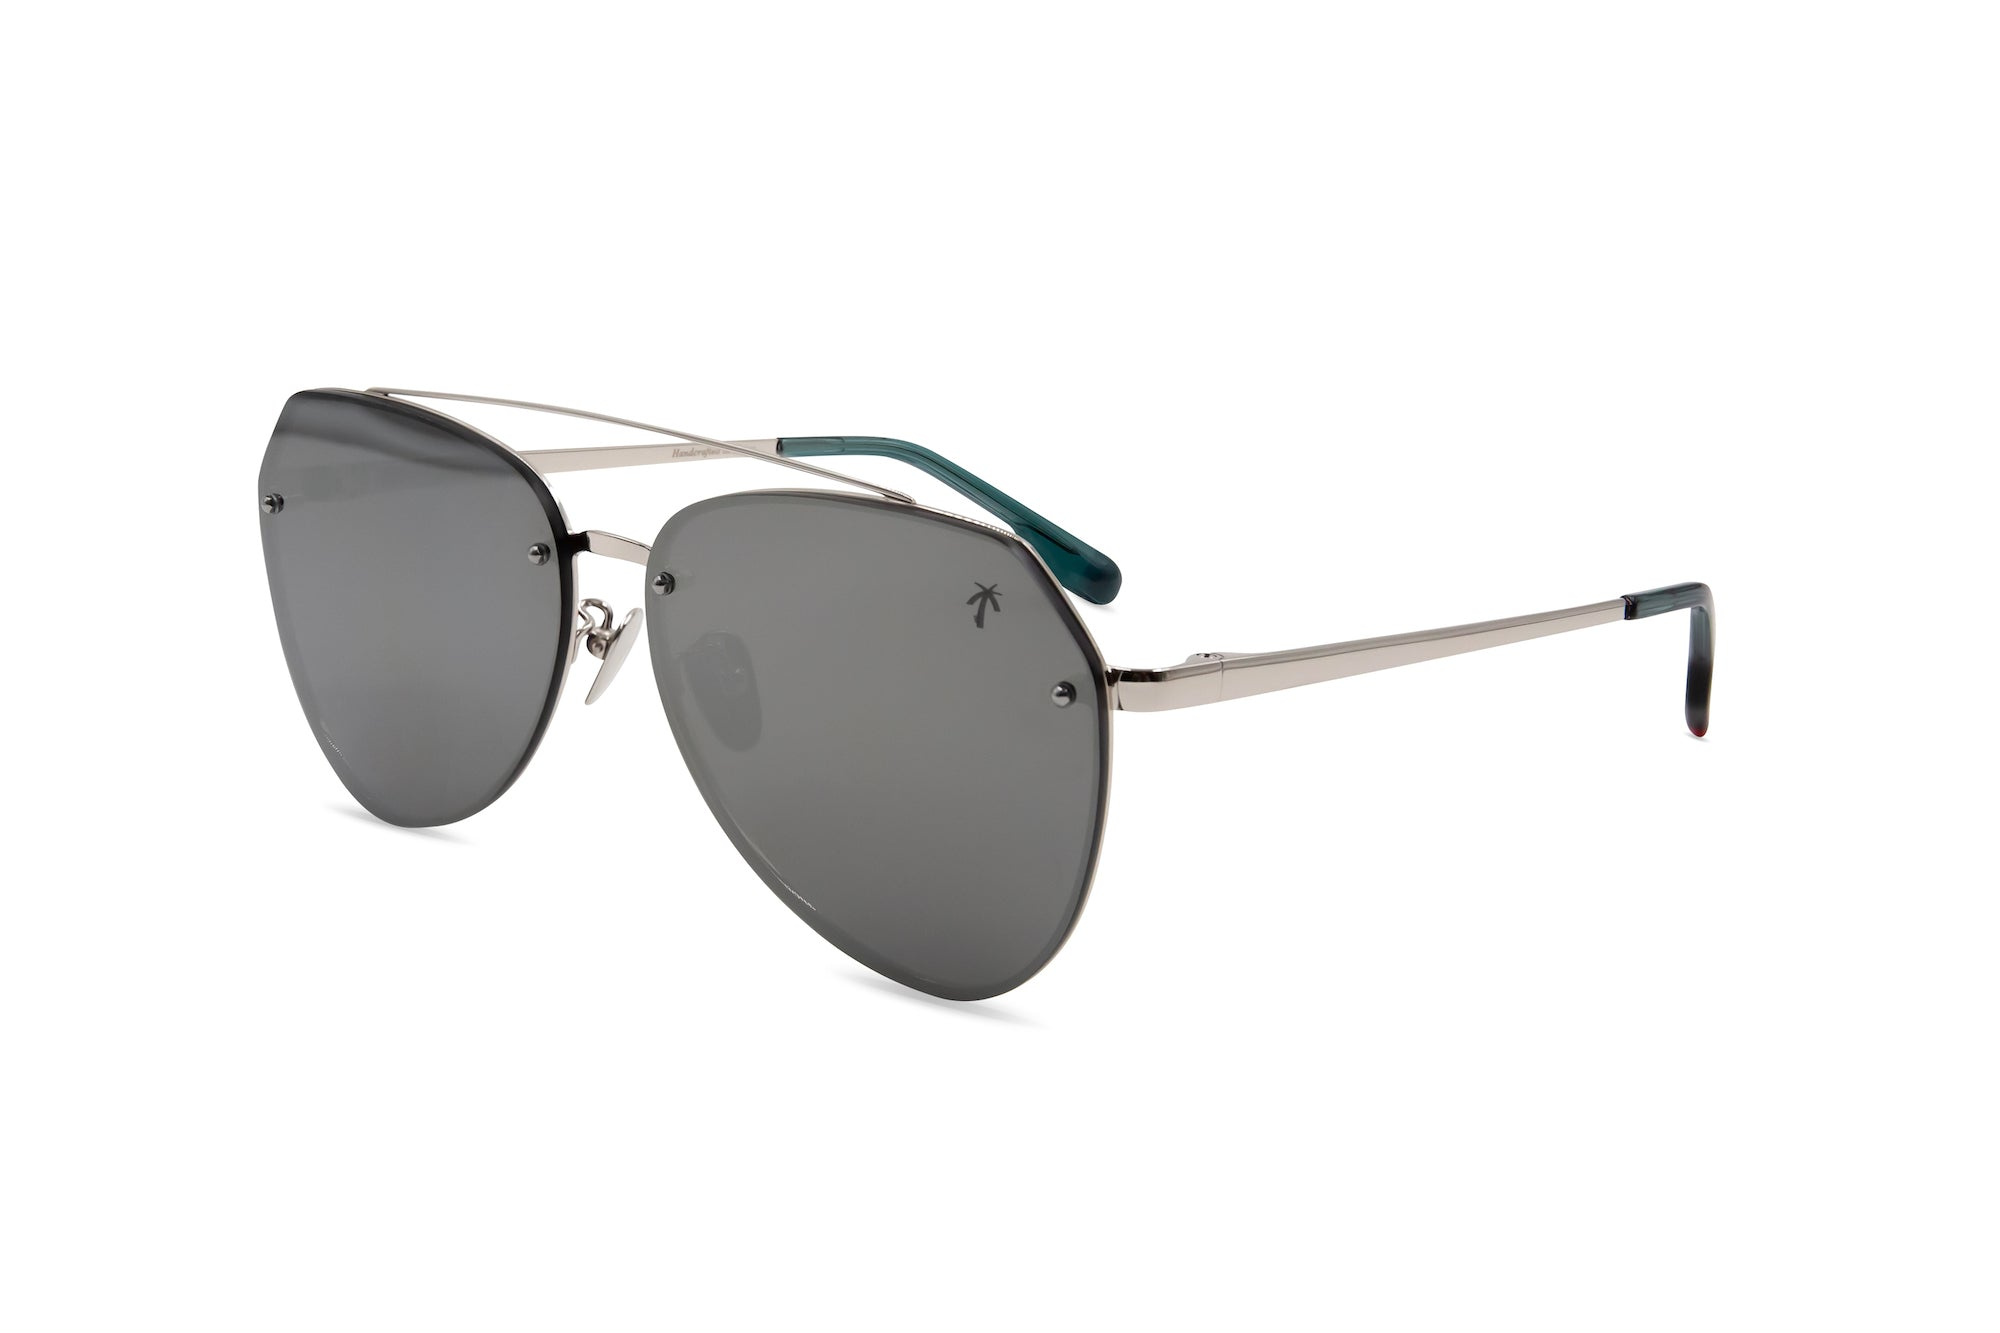 Doheny in Silver Mirror - Peppertint - Designer sunglasses